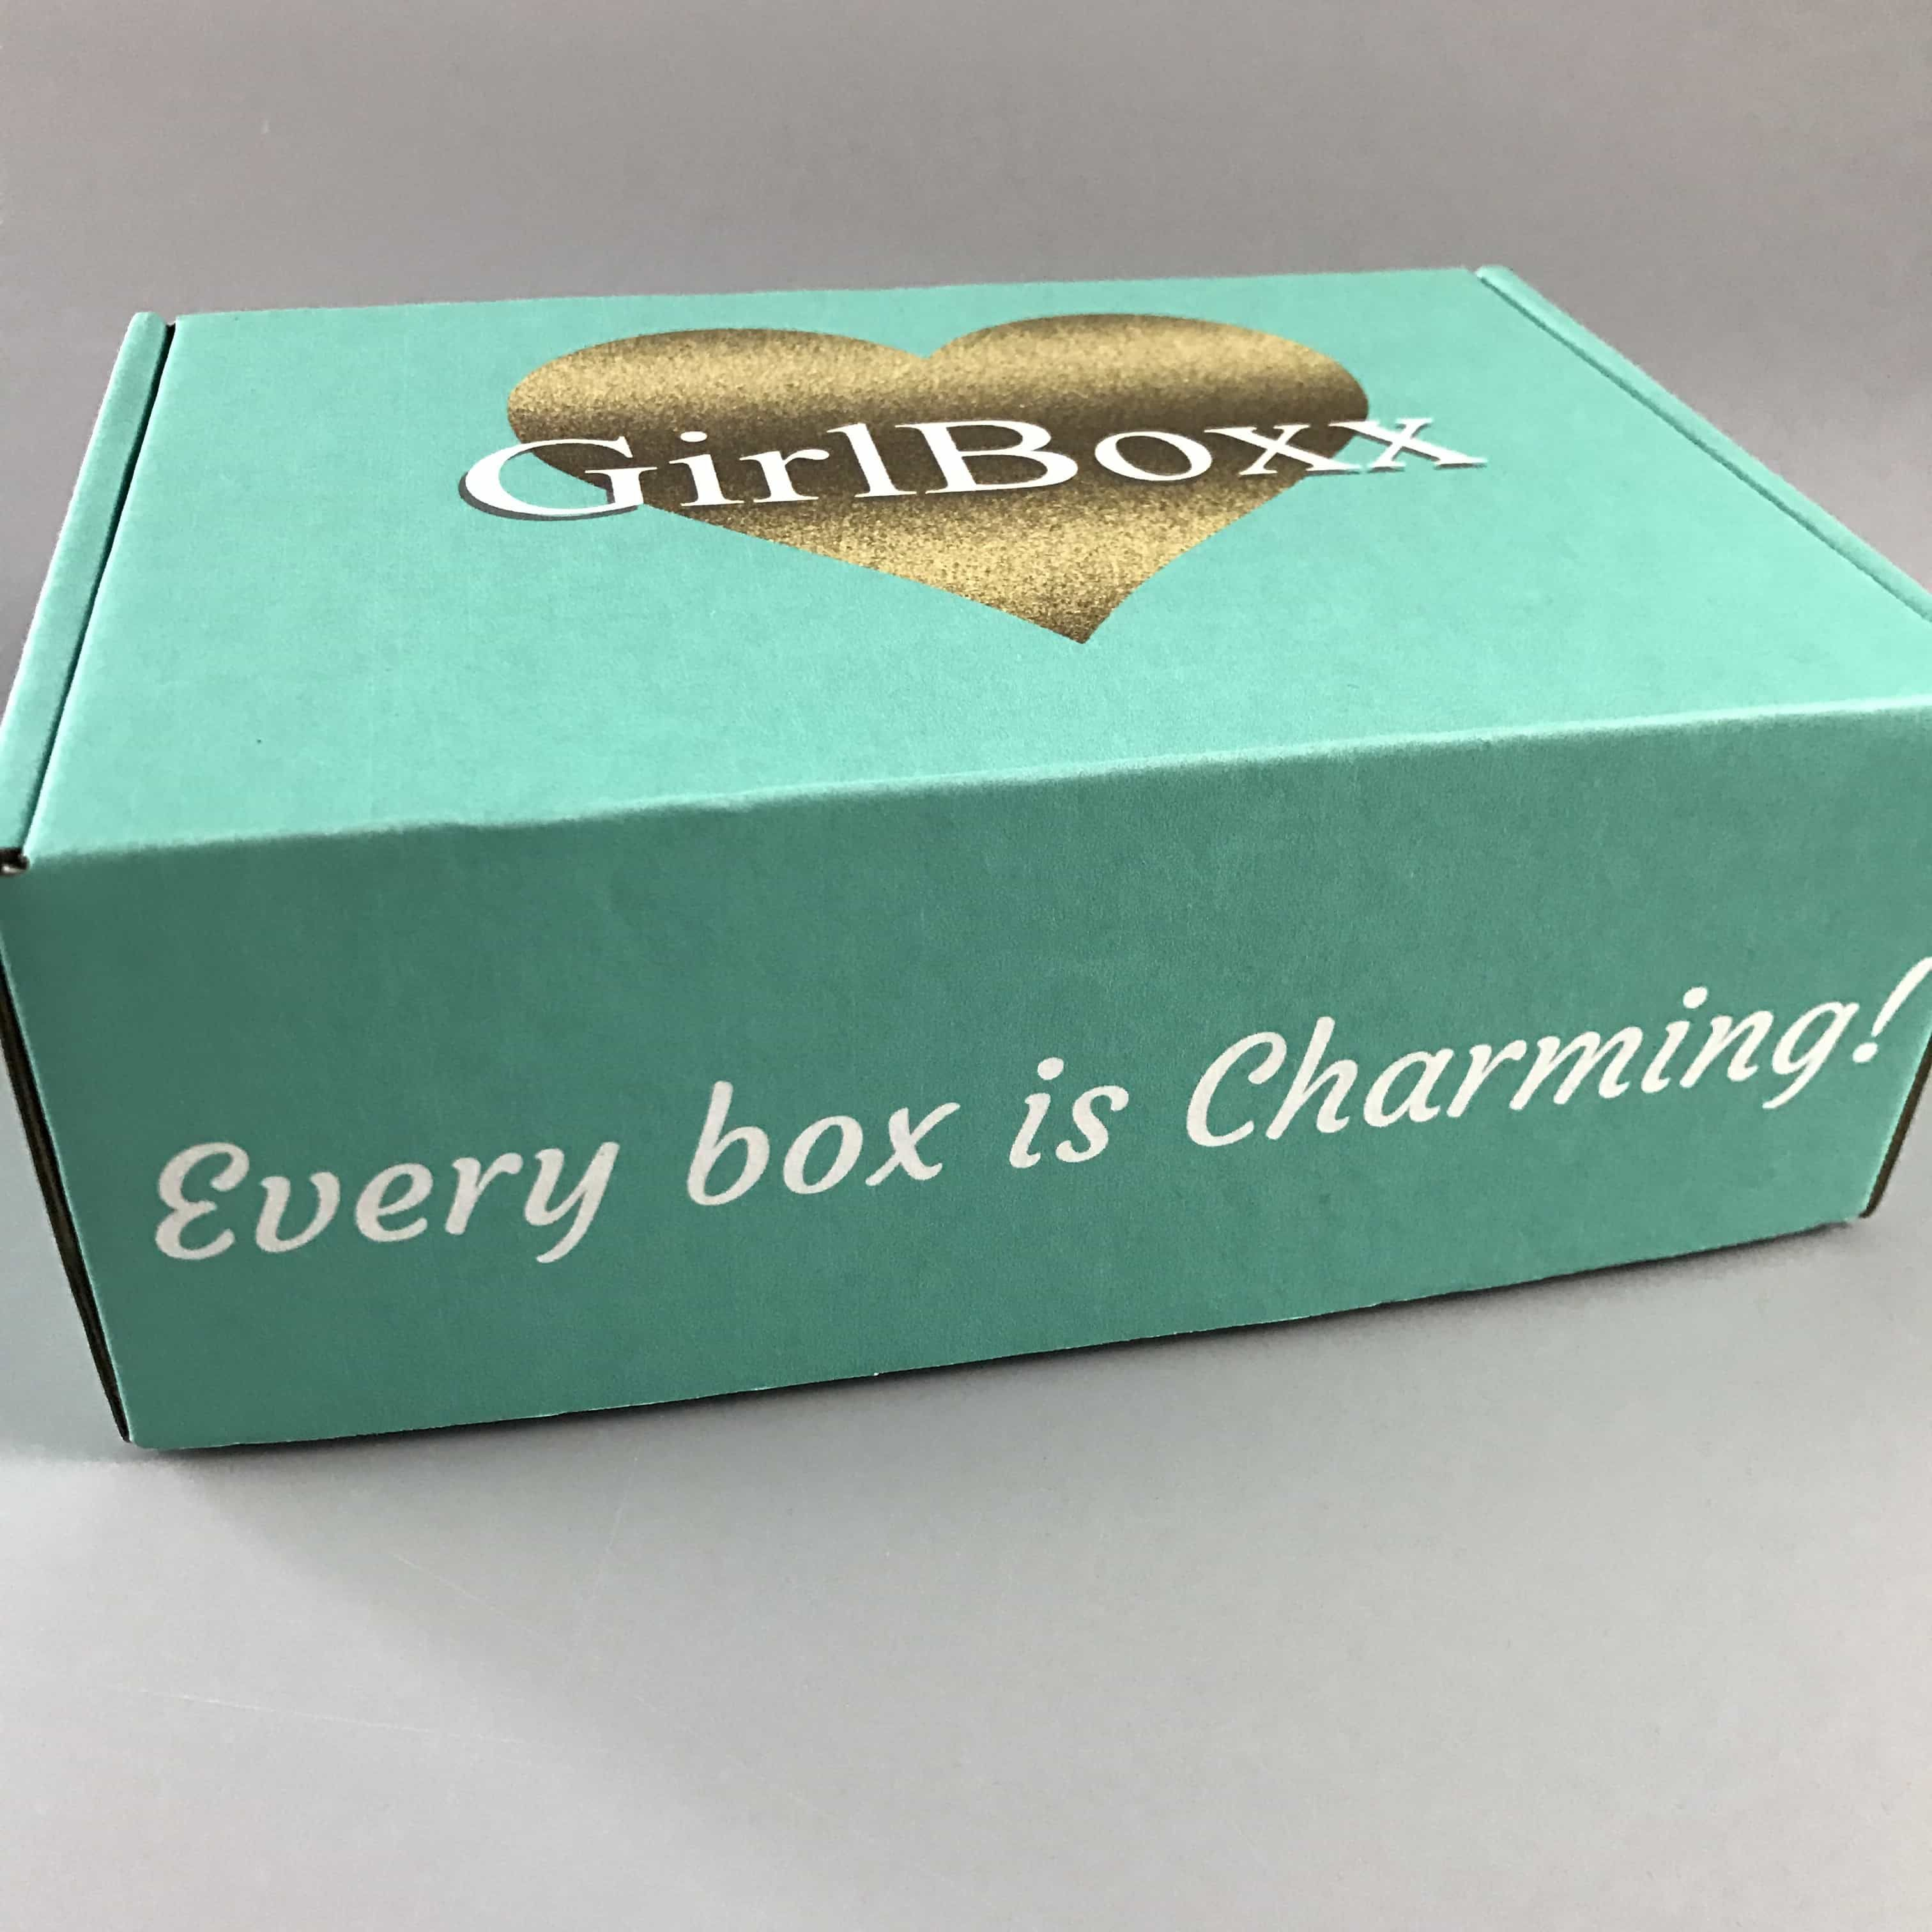 GirlBoxx Subscription boxes for girls, Subscription